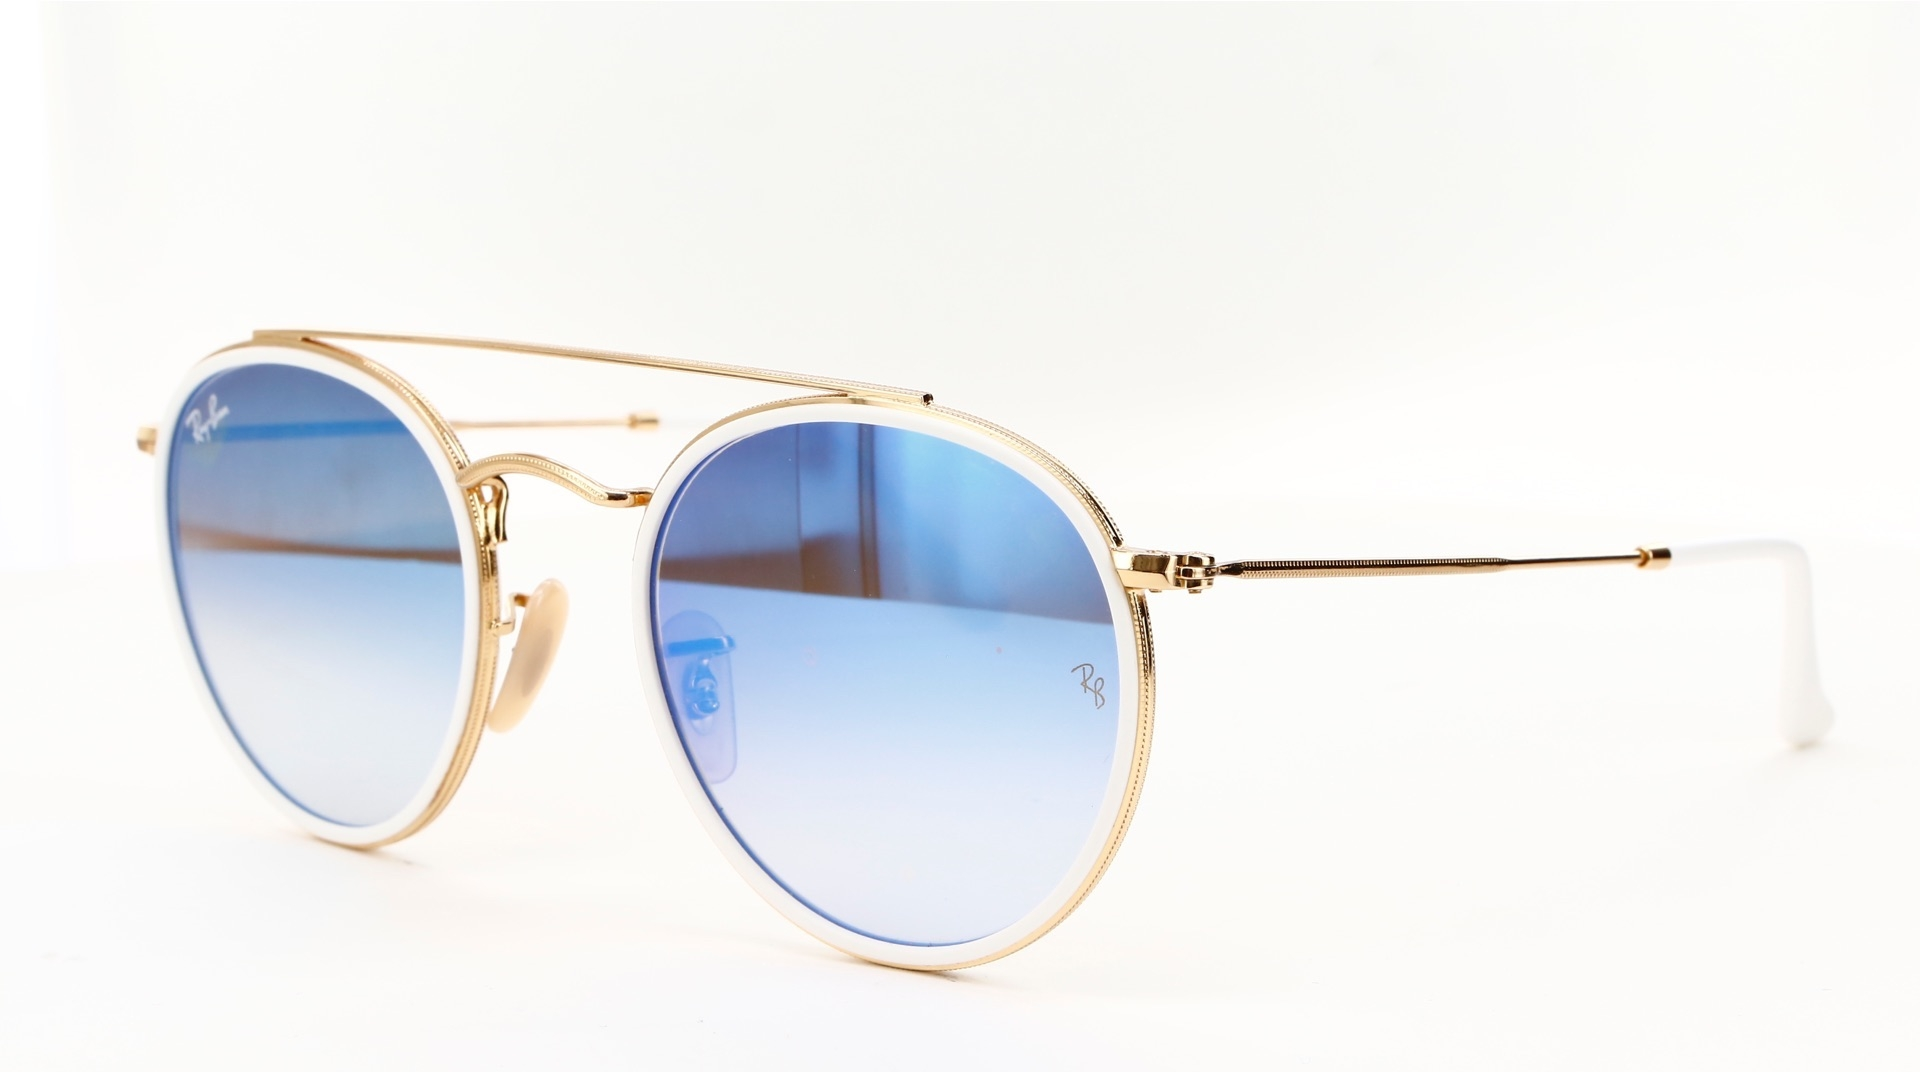 Ray-Ban - ref: 78406